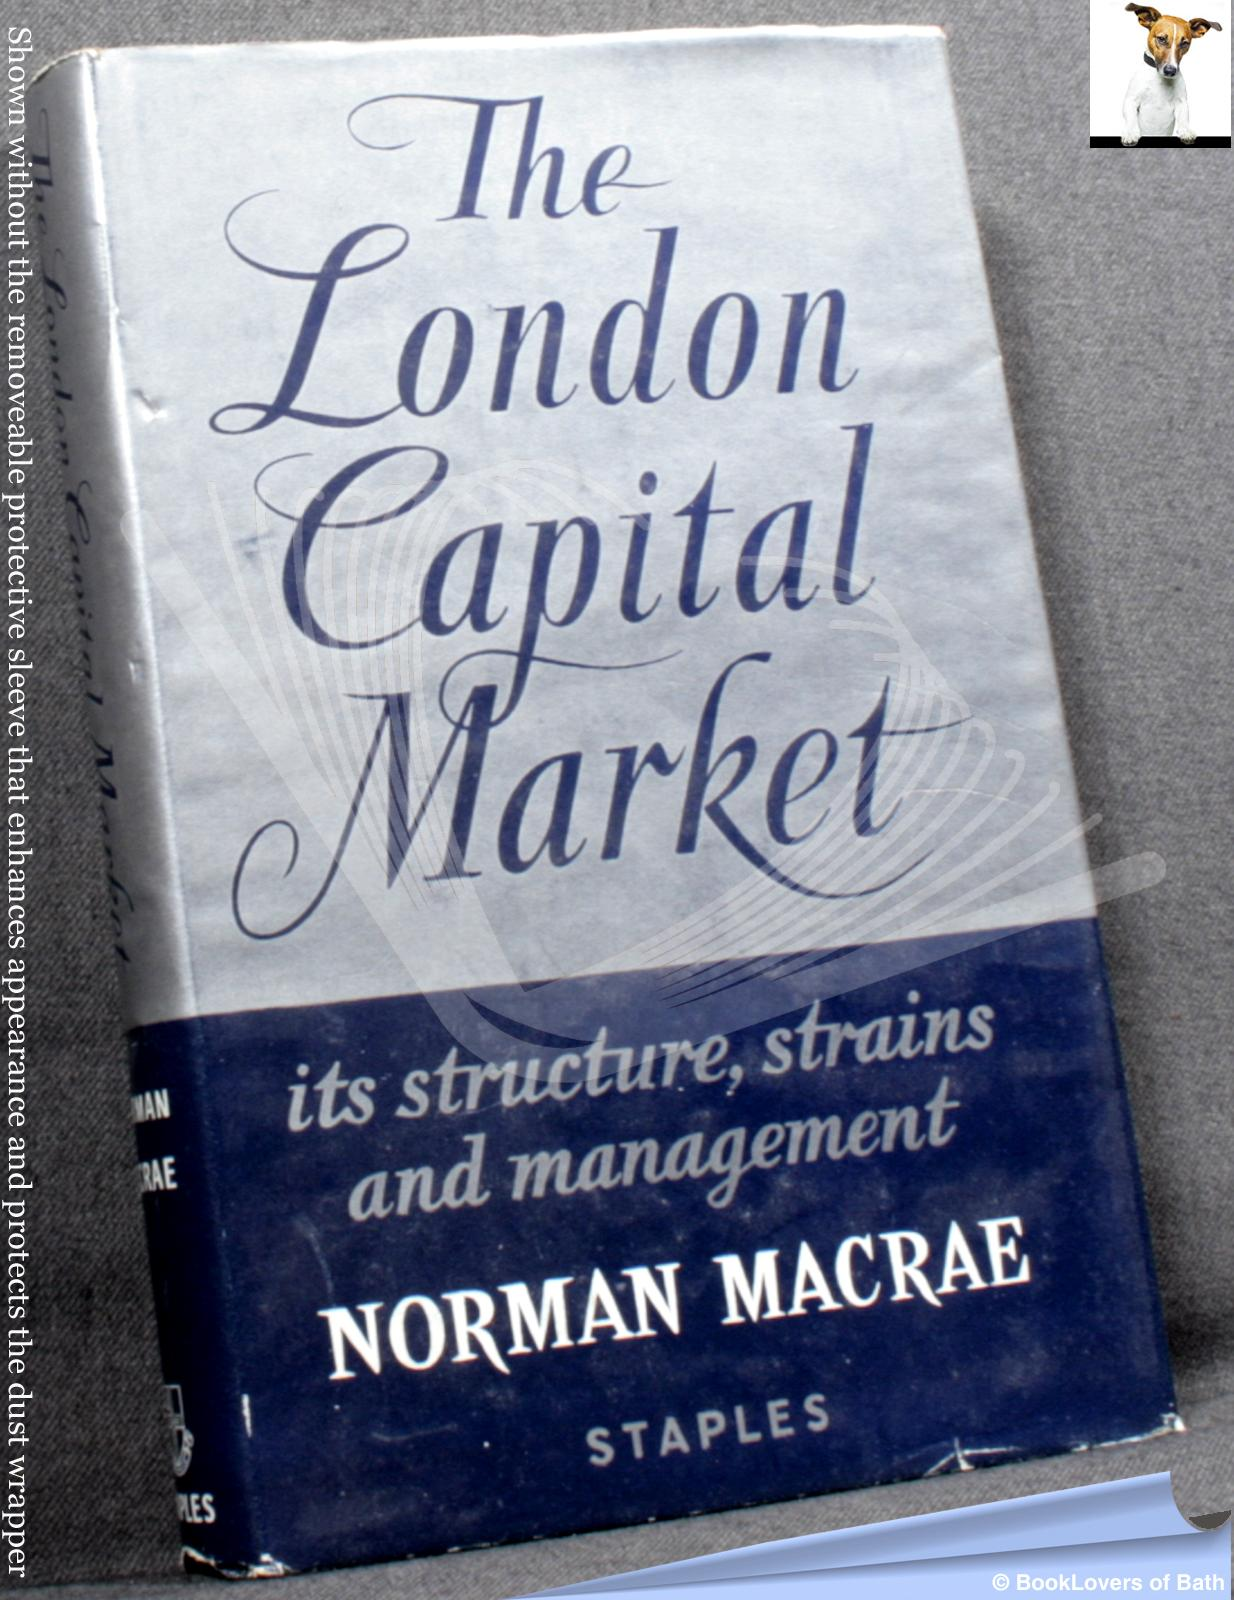 The London Capital Market: Its Structure, Strains, and Management - Norman Macrae